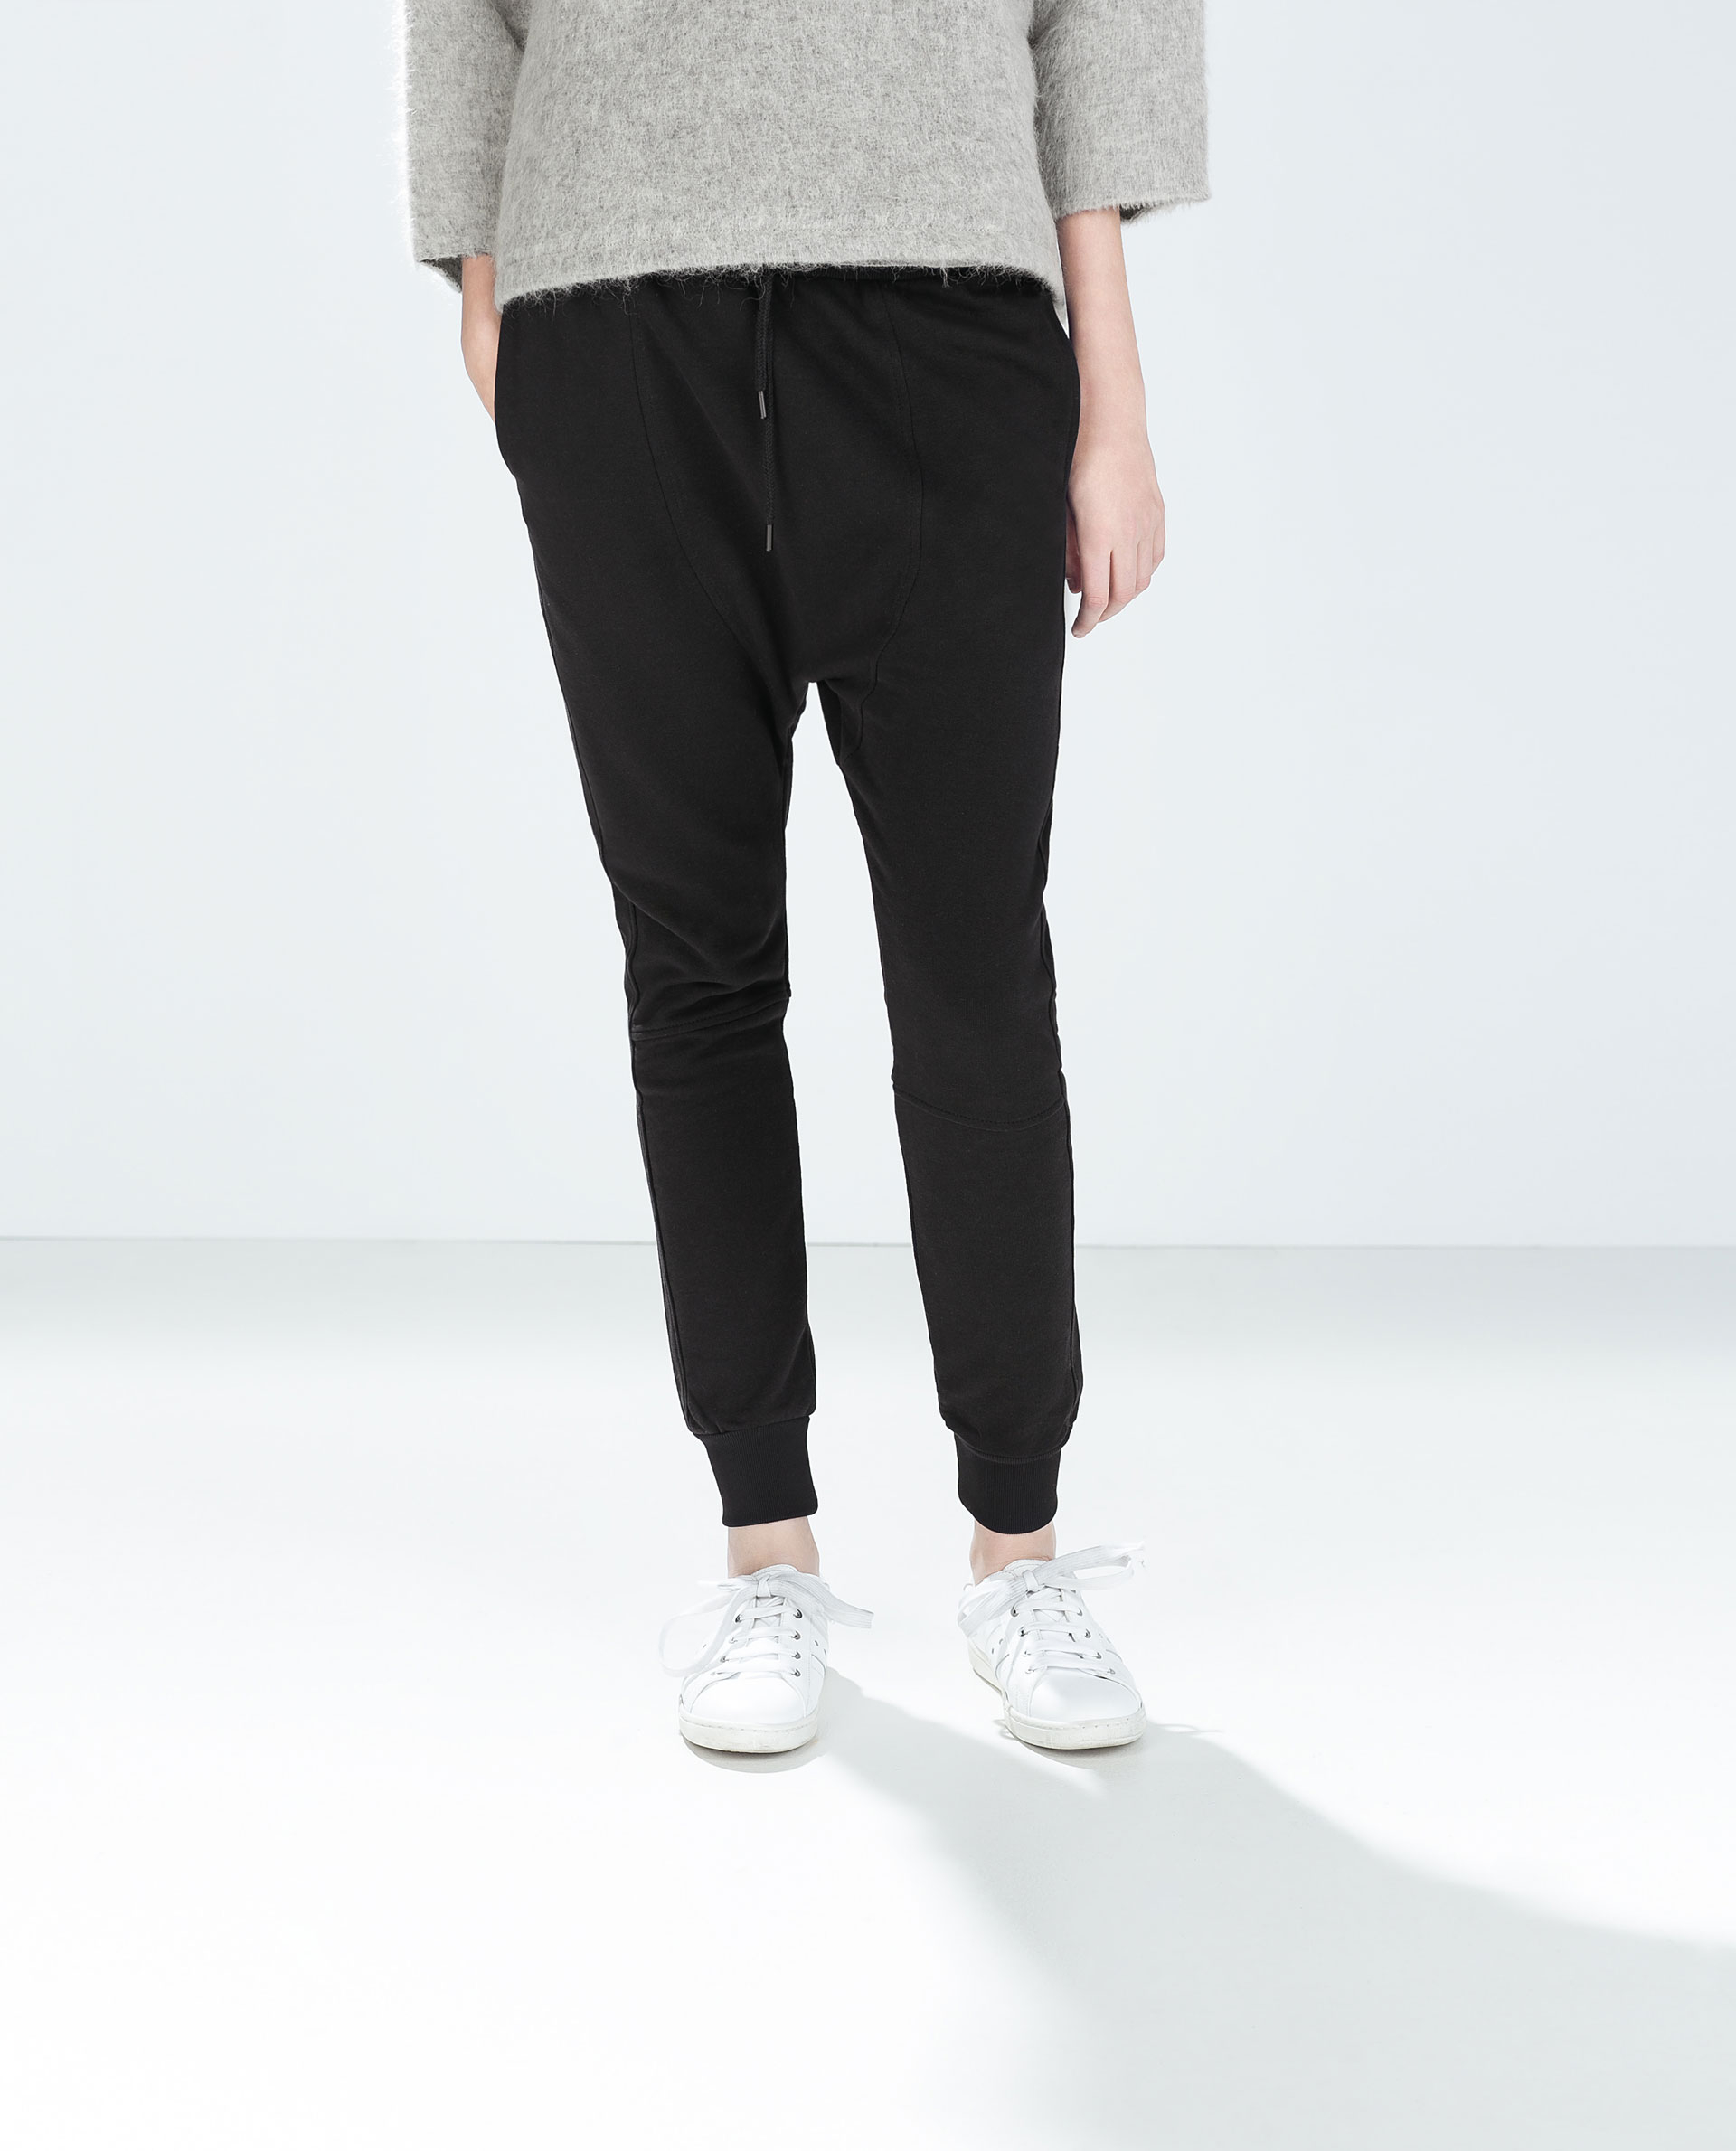 Excellent Zara Baggy Trousers In Black  Lyst